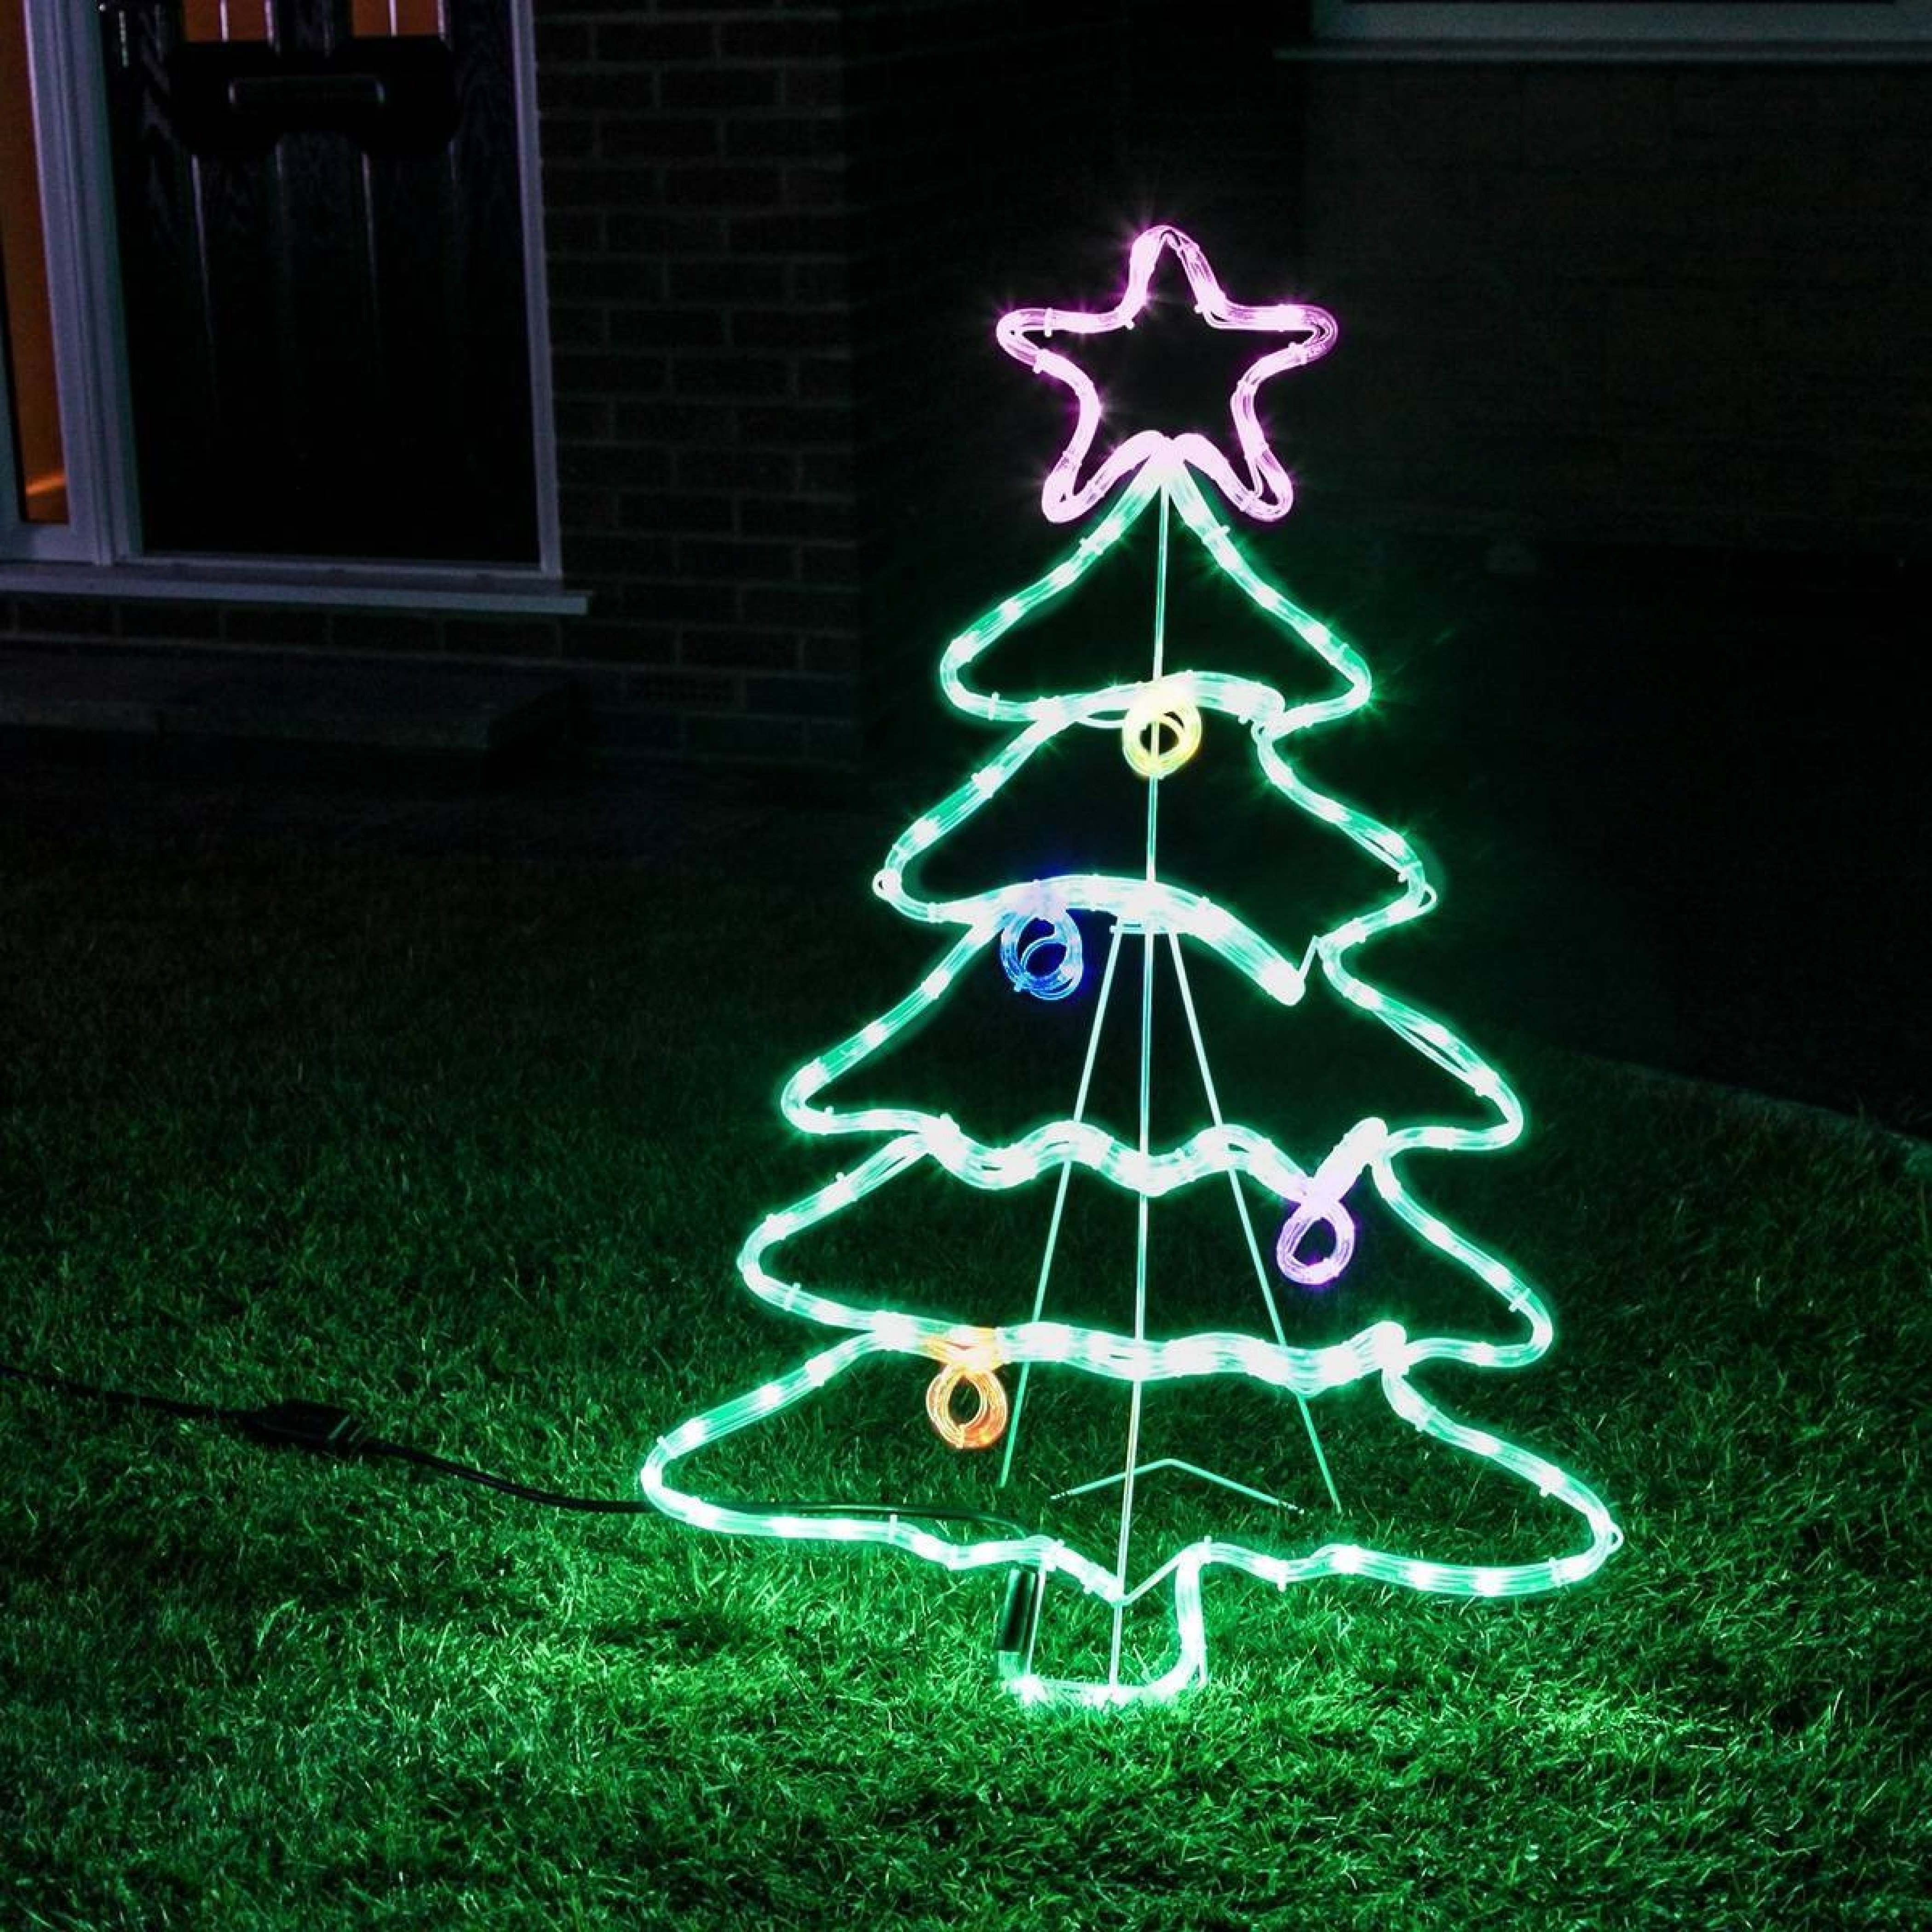 Newest Outdoor Rope Light Christmas Tree Motif, Multi Coloured Twinkling Leds Within Outdoor Christmas Rope Lanterns (View 6 of 20)